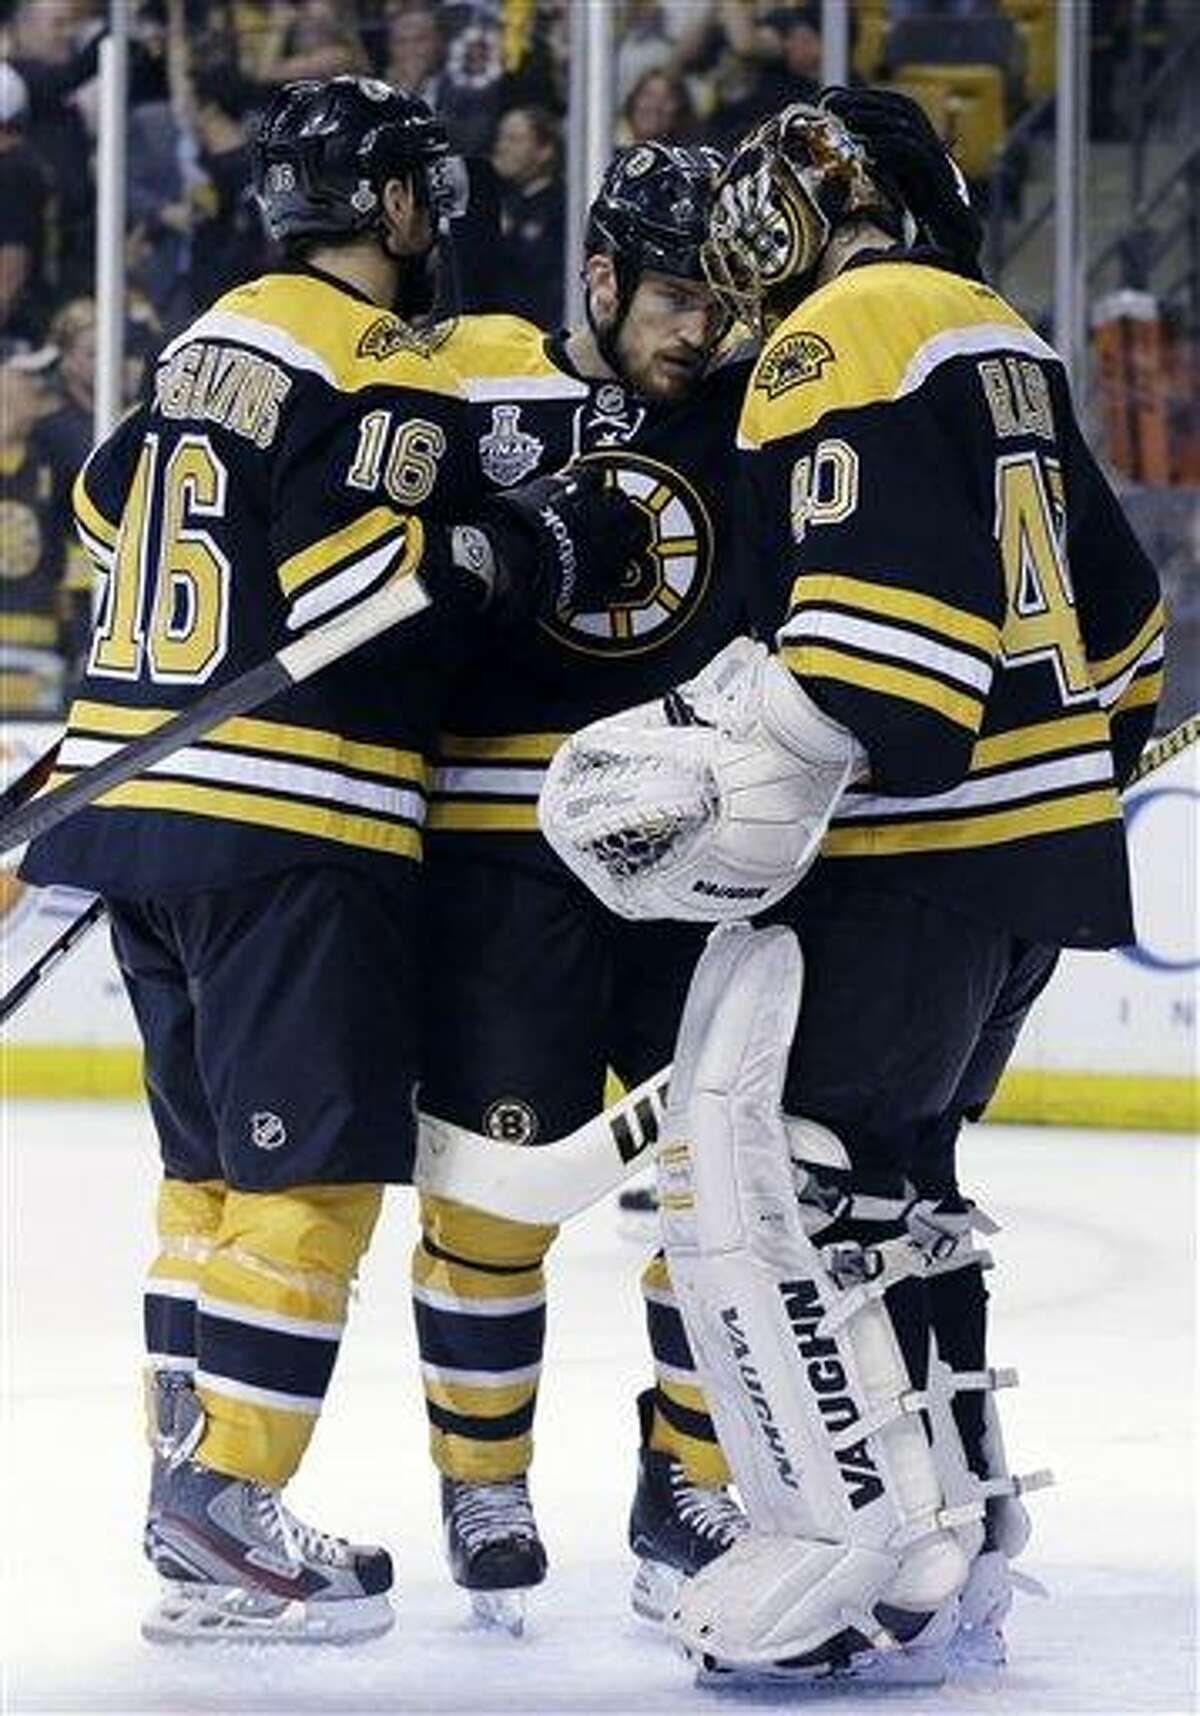 Boston Bruins left wing Kaspars Daugavins (16), of Latavia, and defenseman Andrew Ference, center, congratulate Boston Bruins goalie Tuukka Rask (40), of Finland, after his shutout against the Chicago Blackhawks 2-0 in Game 3 of the NHL hockey Stanley Cup Finals in Boston, Monday, June 17, 2013. (AP Photo/Elise Amendola)